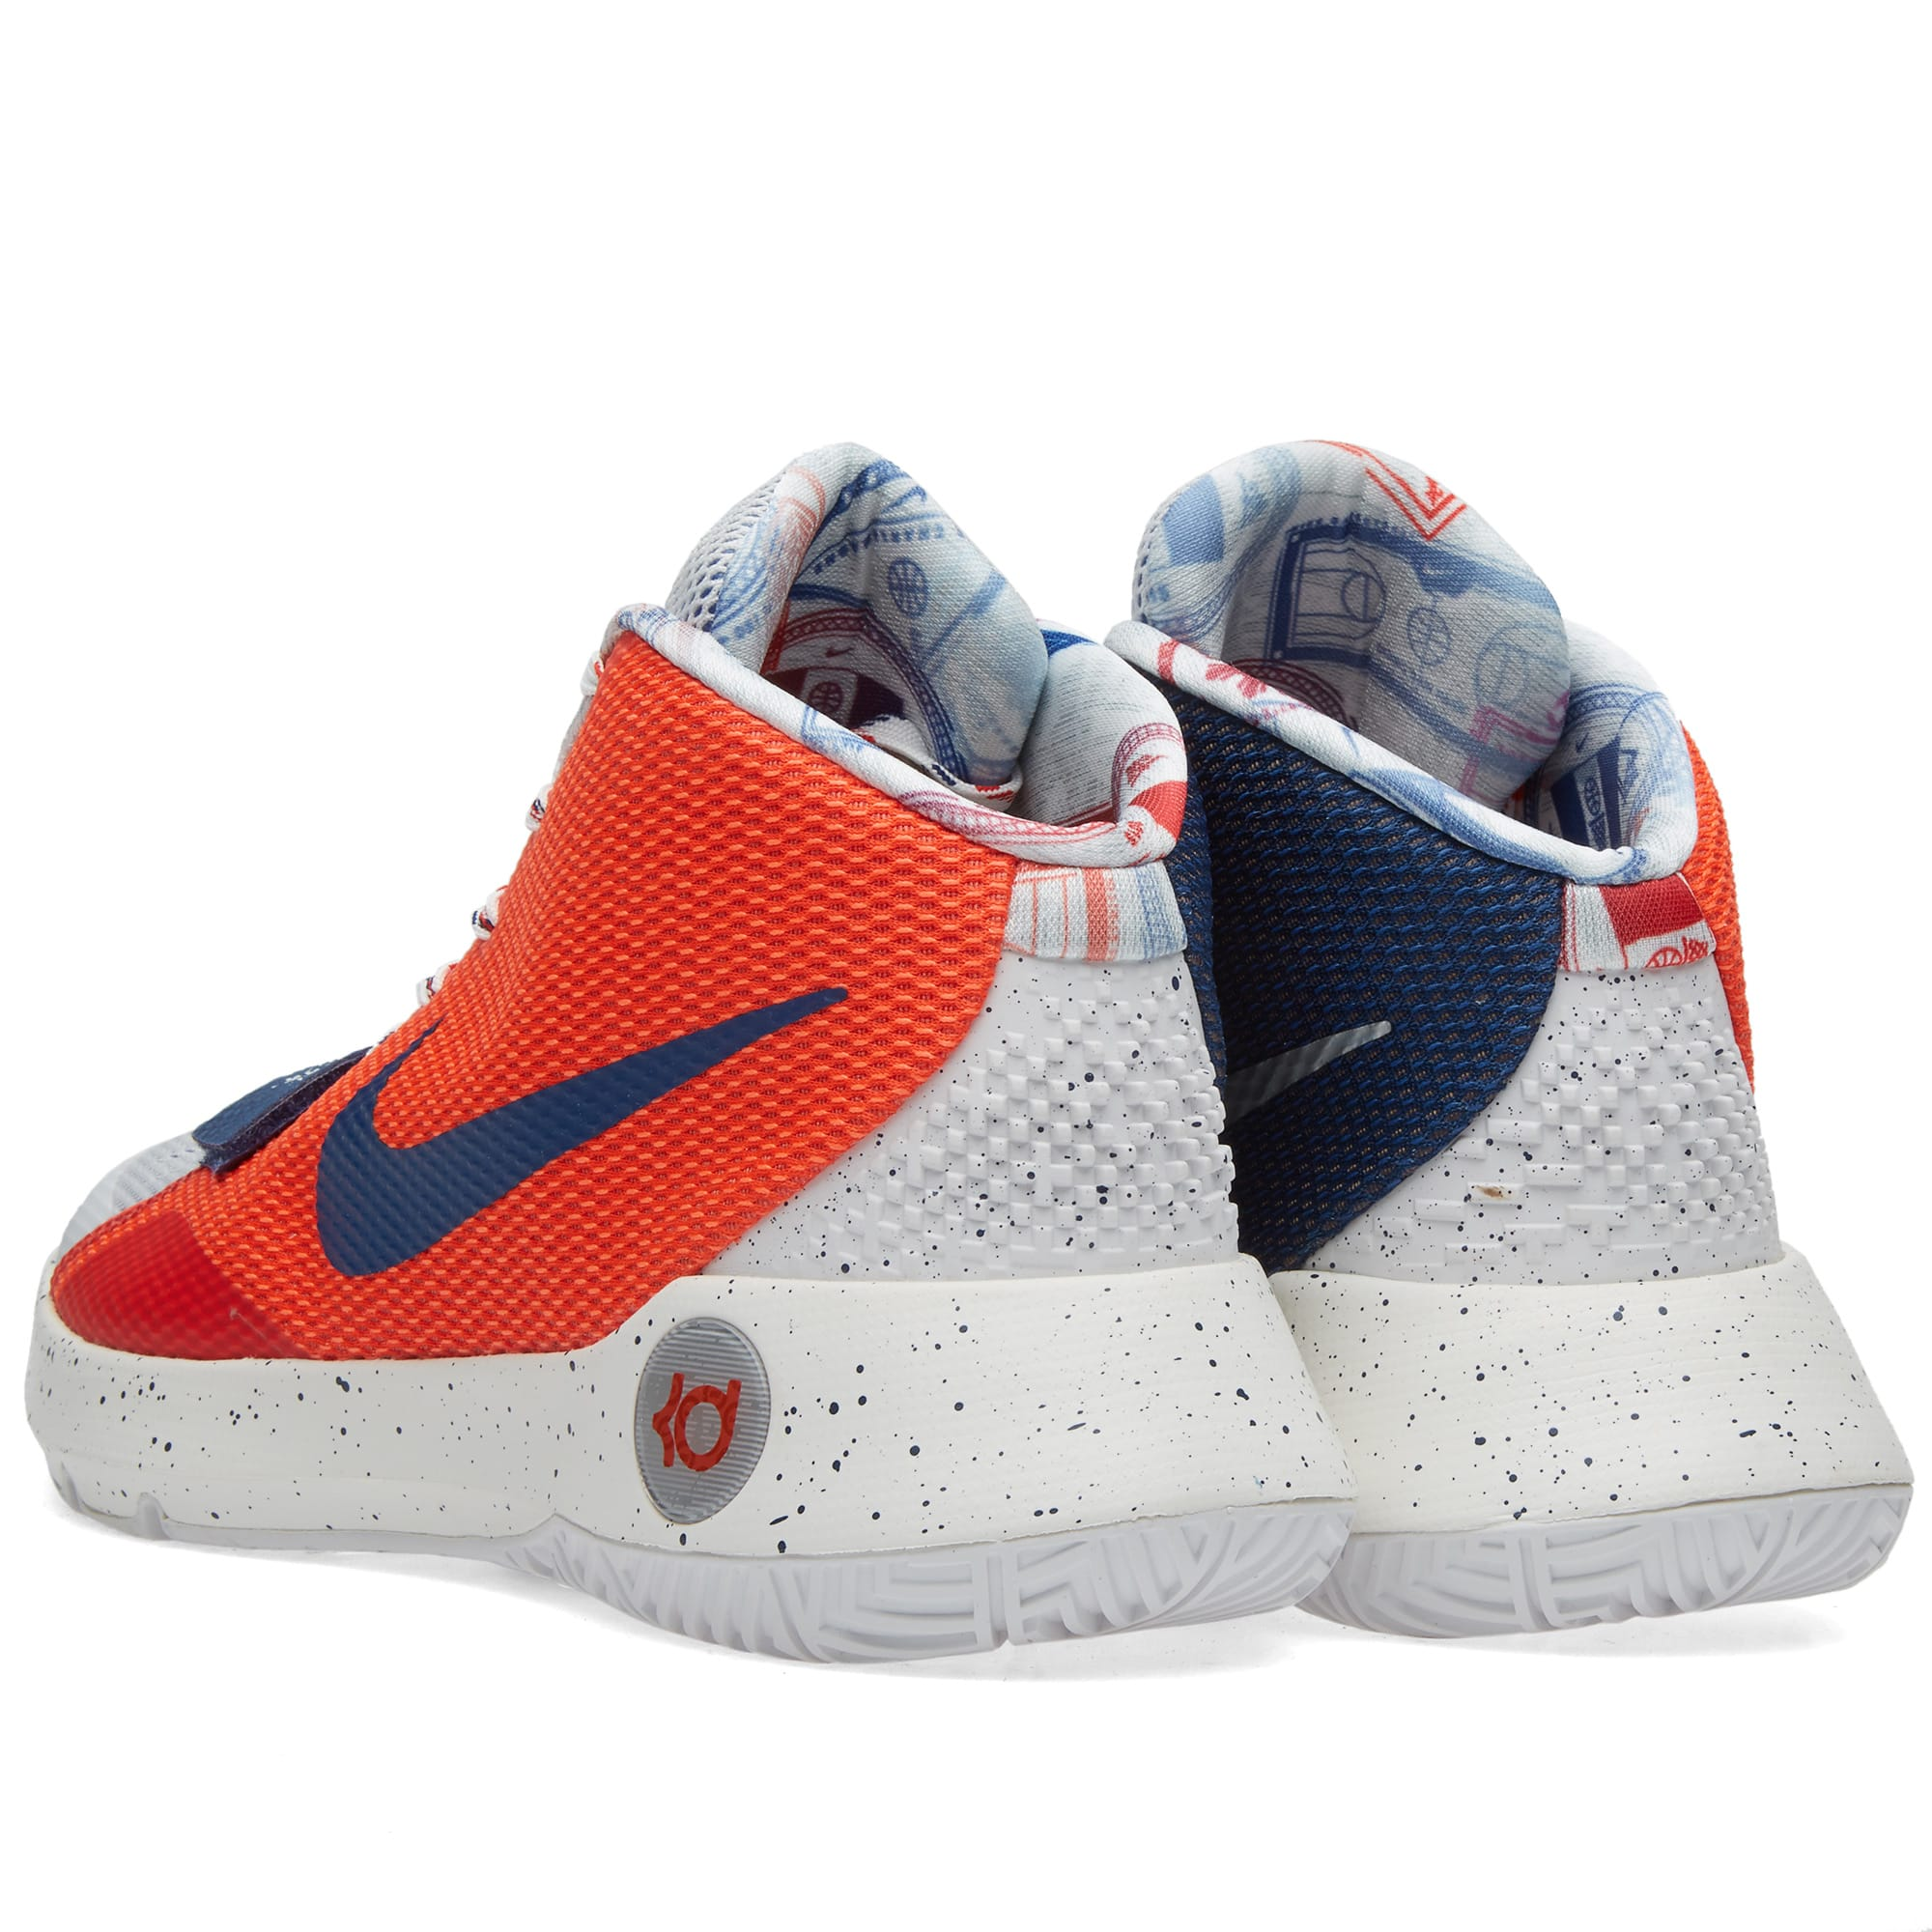 new styles 0693c 5ed95 Nike KD Trey 5 III LTD Multi   White   END.